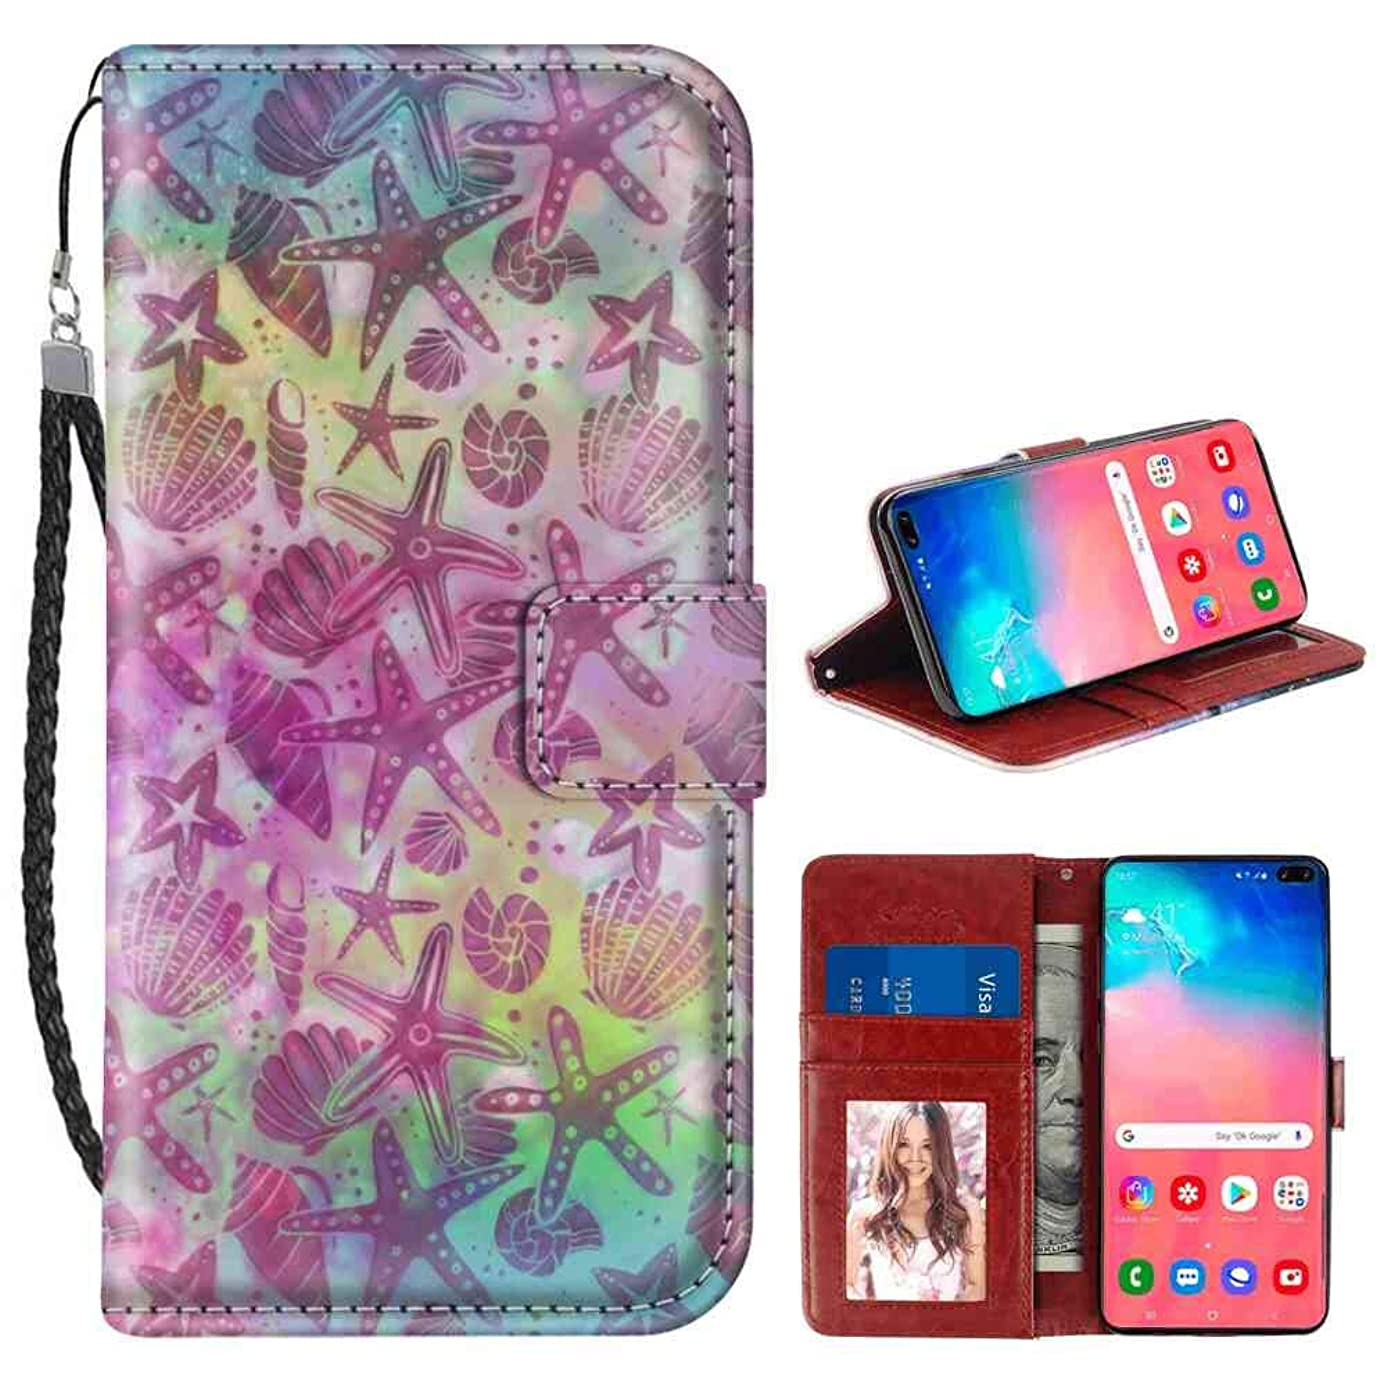 Wallet Case Fit Galaxy S10 Plus (2019) 6.4 Inch Colorful Sea Shells and Starfish Flap